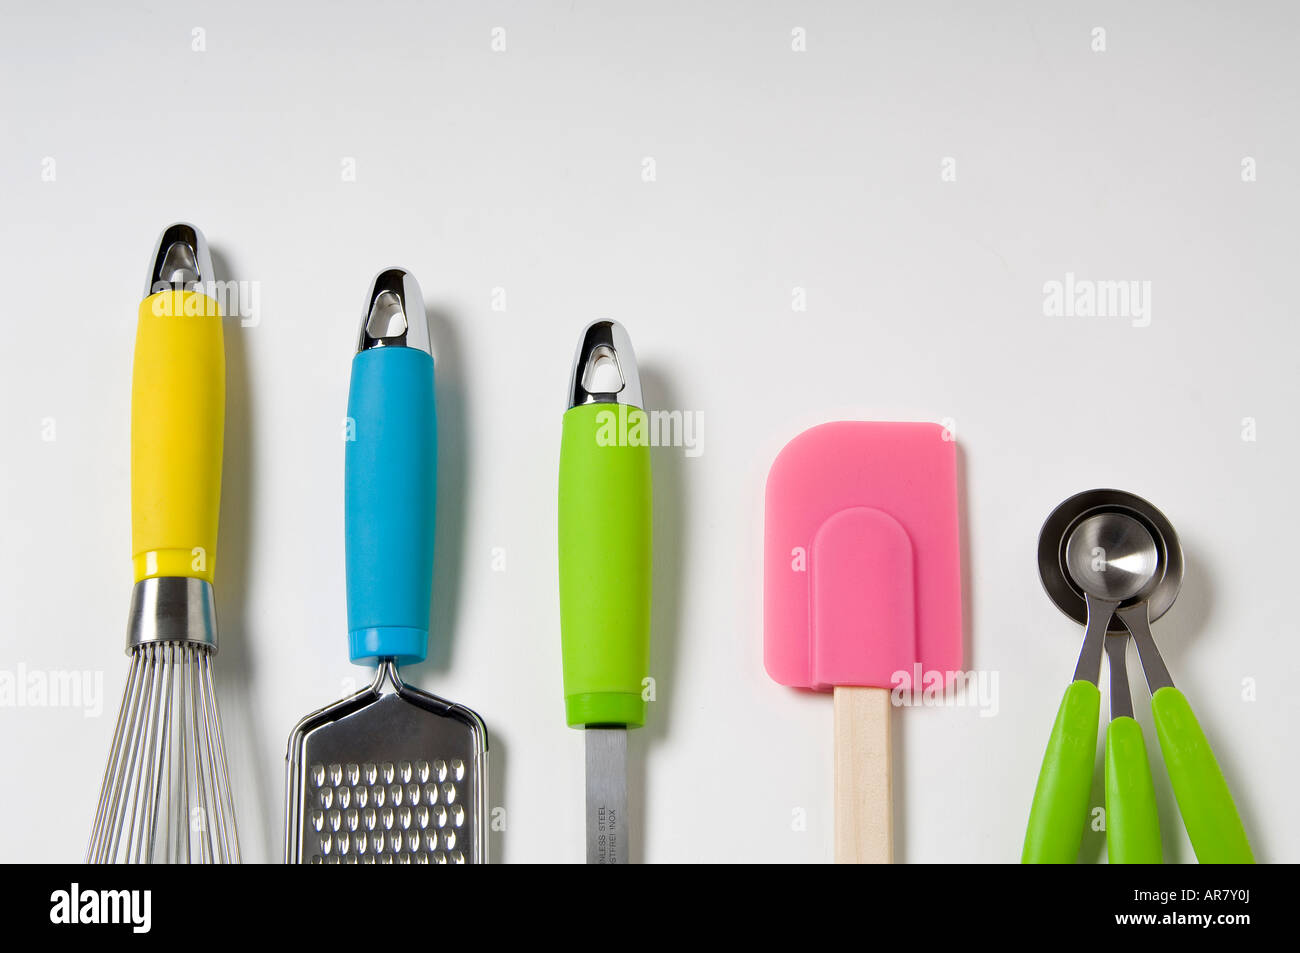 Kitchen utensils with neon accents. - Stock Image